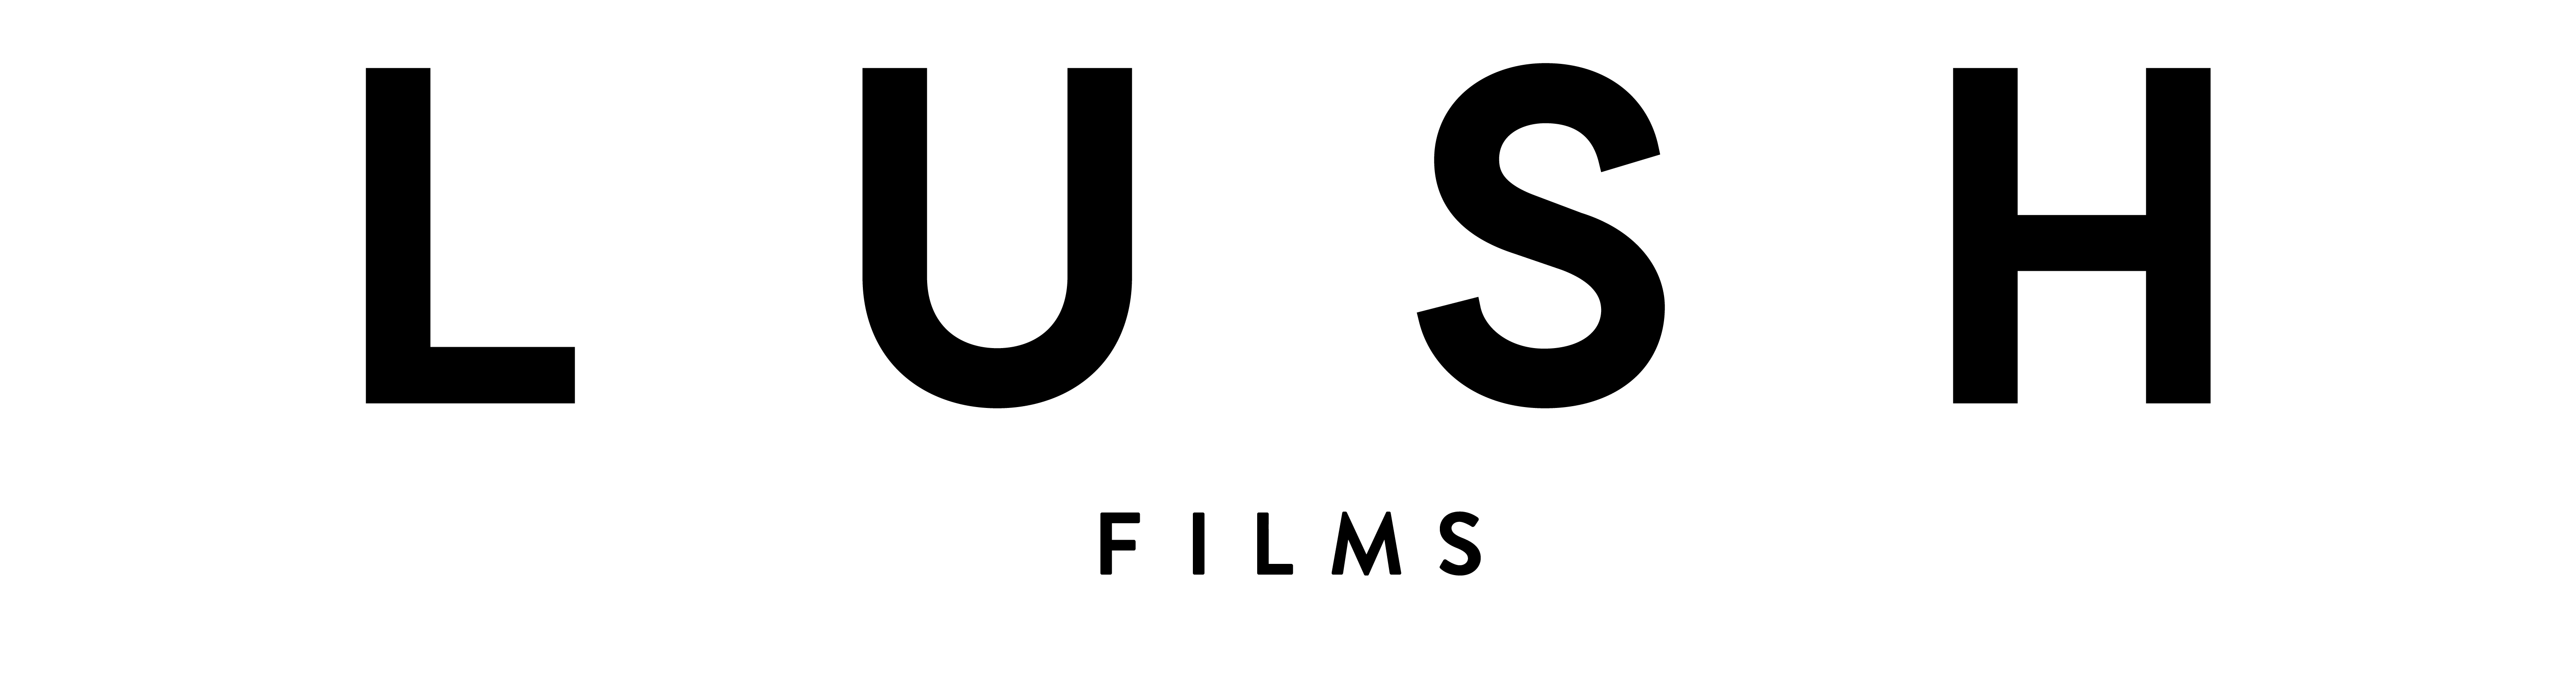 Lush Films - We make beautiful films for Great British Brands.